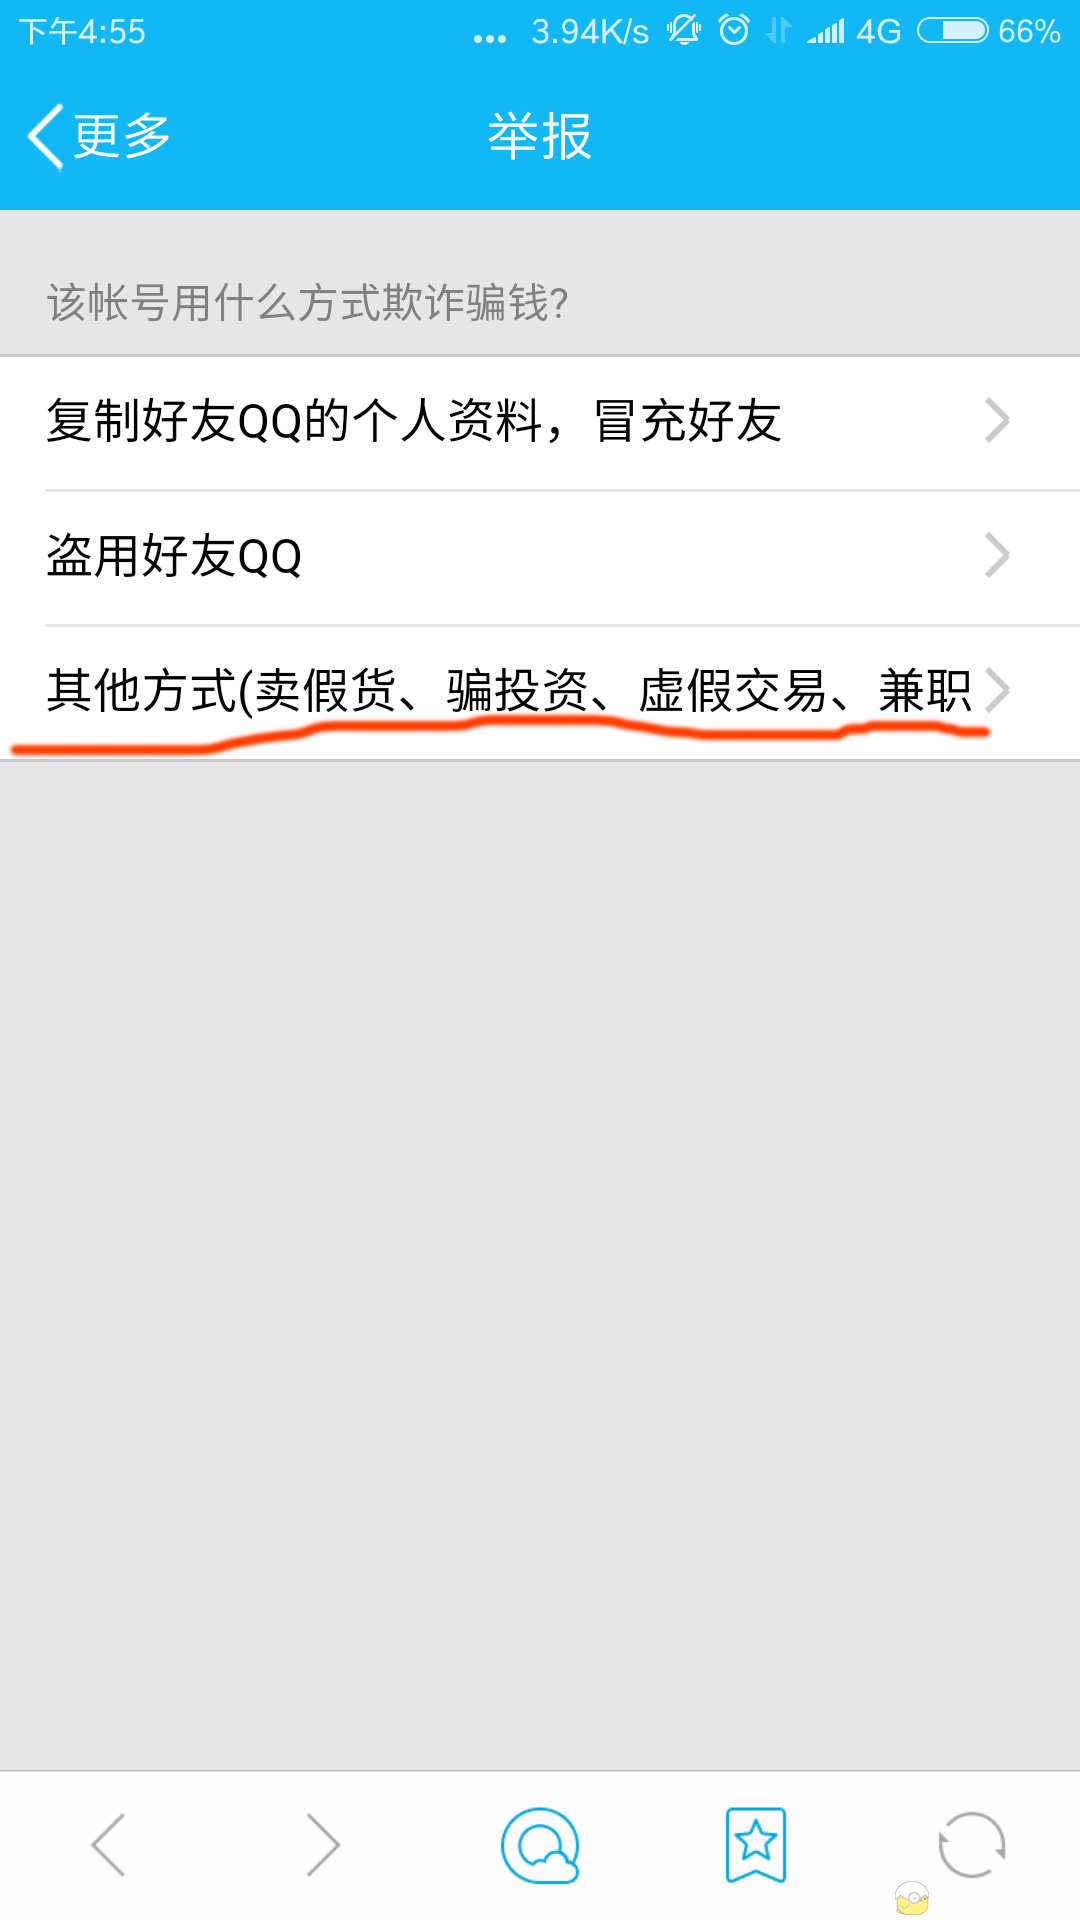 Screenshot_2016-07-25-16-55-08-899_com.tencent.mo.png